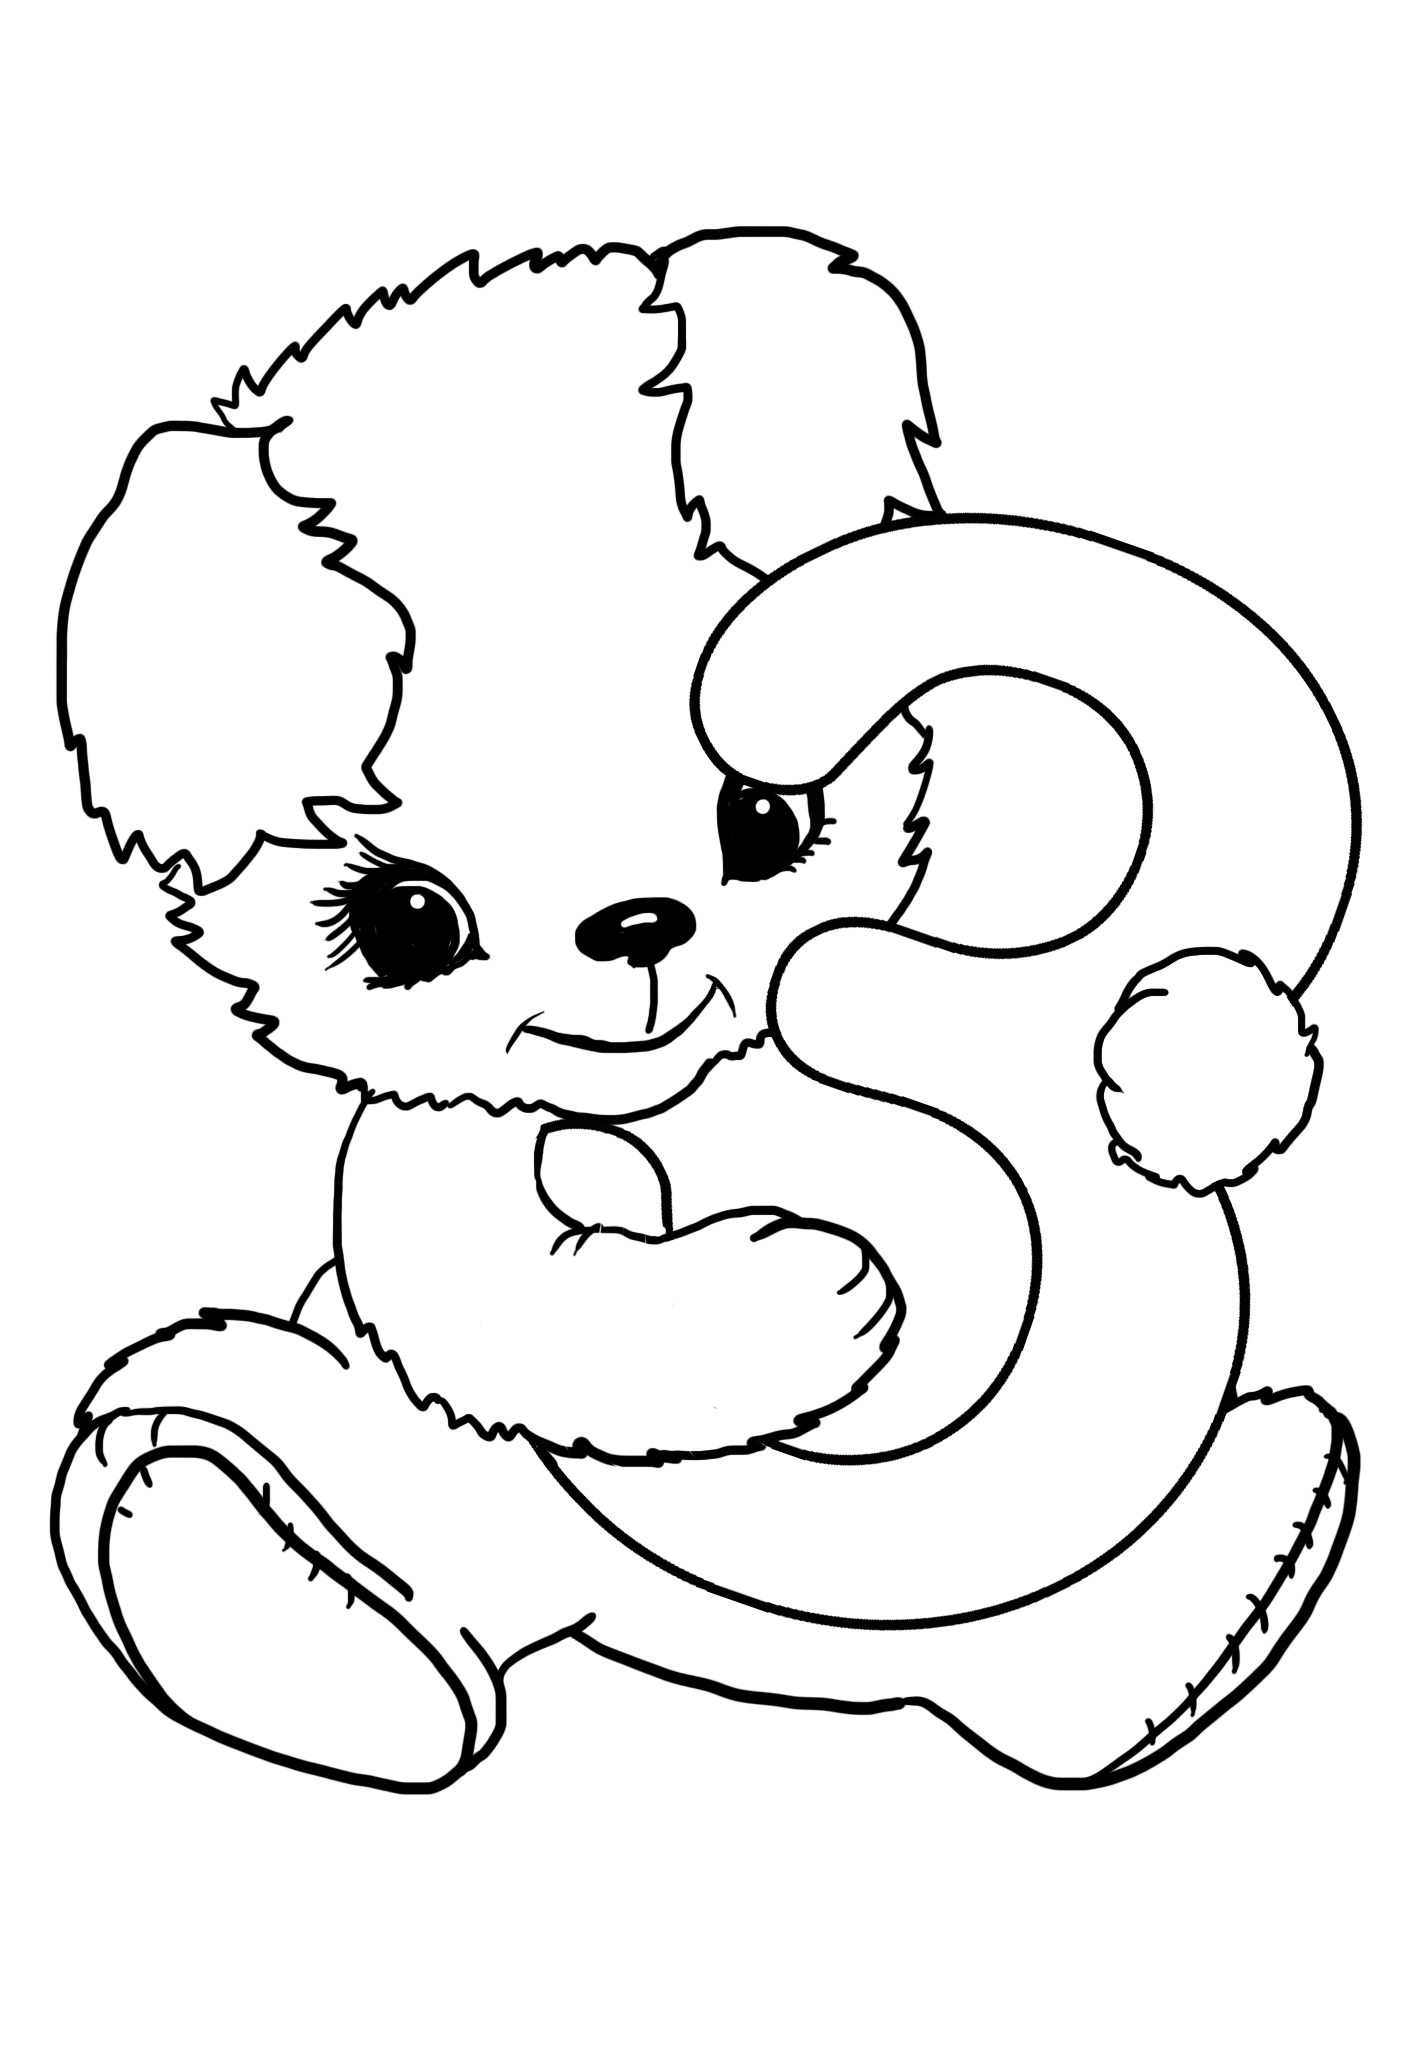 3rd birthday coloring page